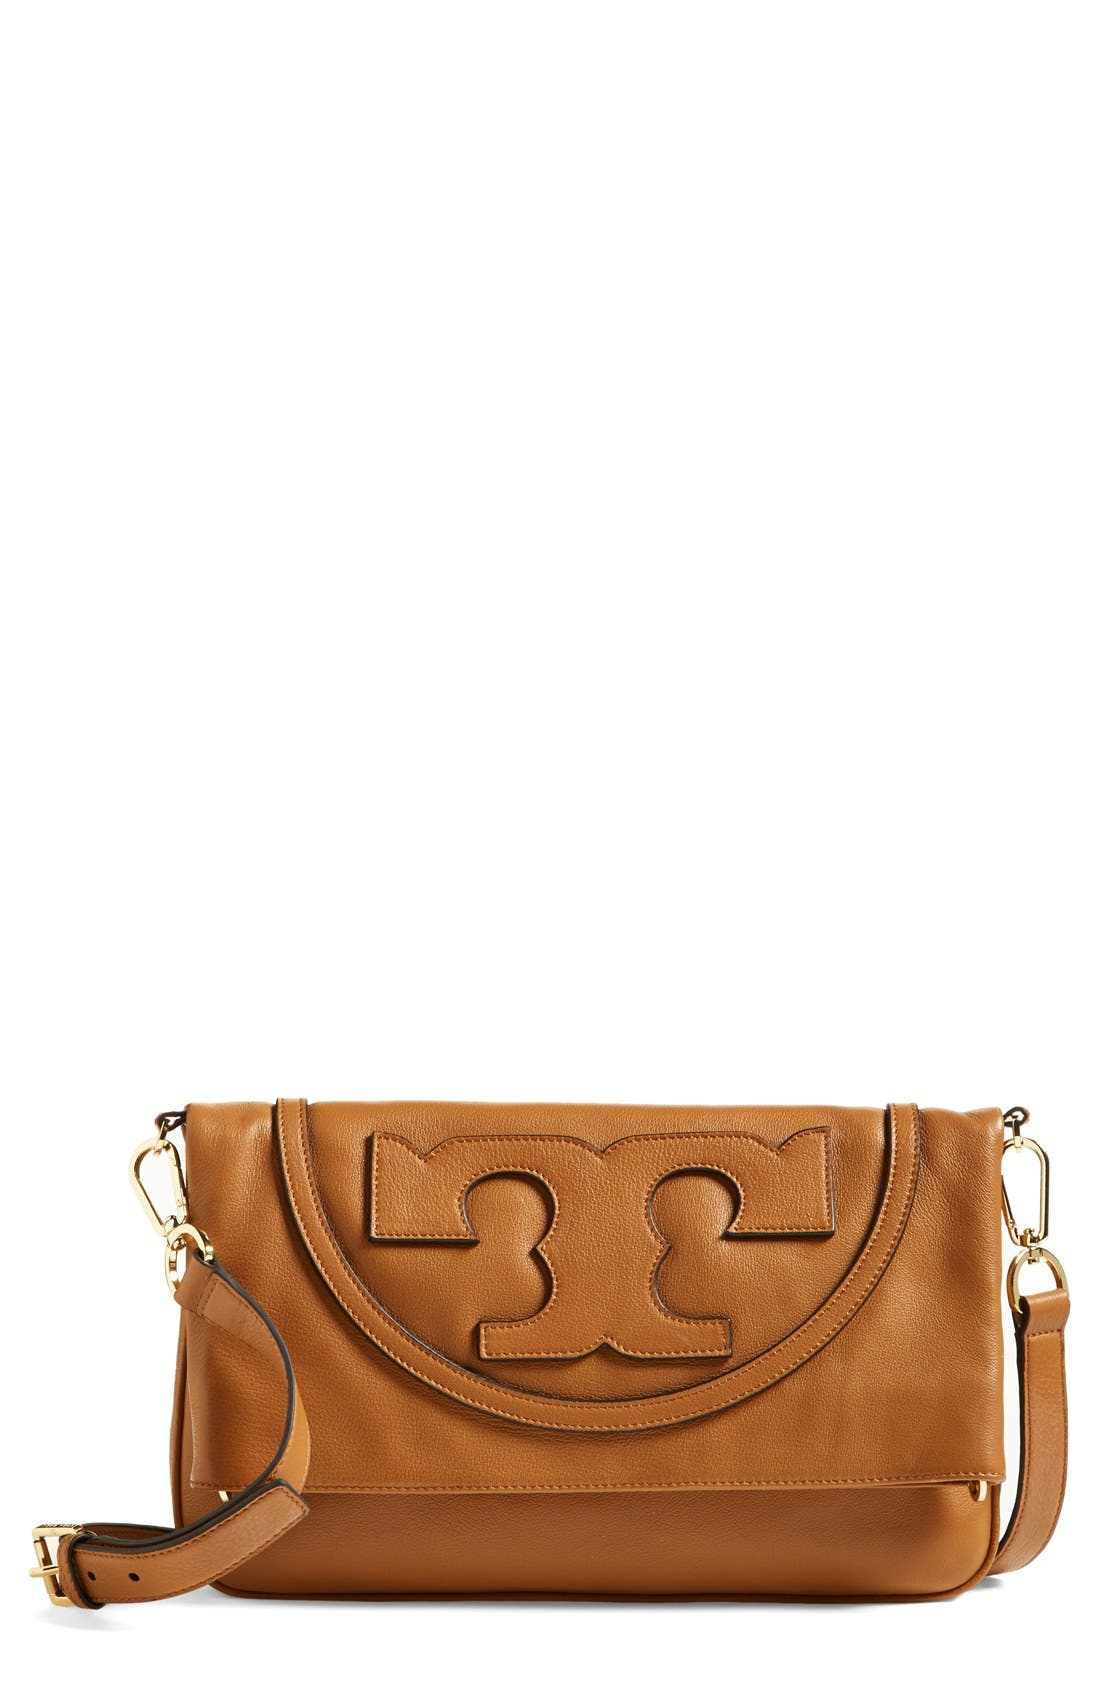 Alternate Image 1 Selected - Tory Burch 'All T Suki' Leather Crossbody Bag